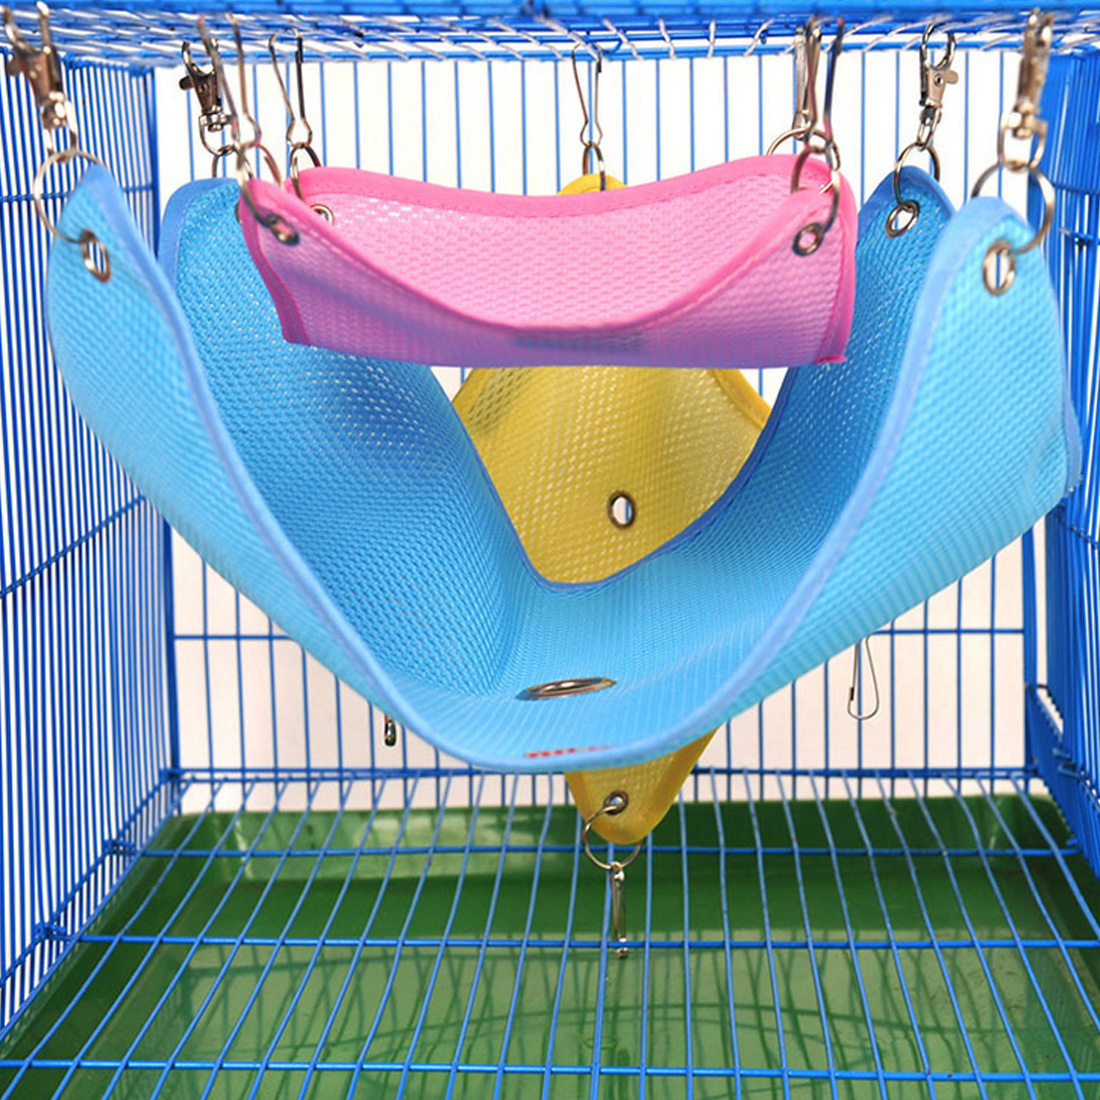 3Colors Hammock Pet Hamster Rat Parrot Ferret Hamster Hanging Bed Cushion Hamster House Cage Accessories For Hamsters